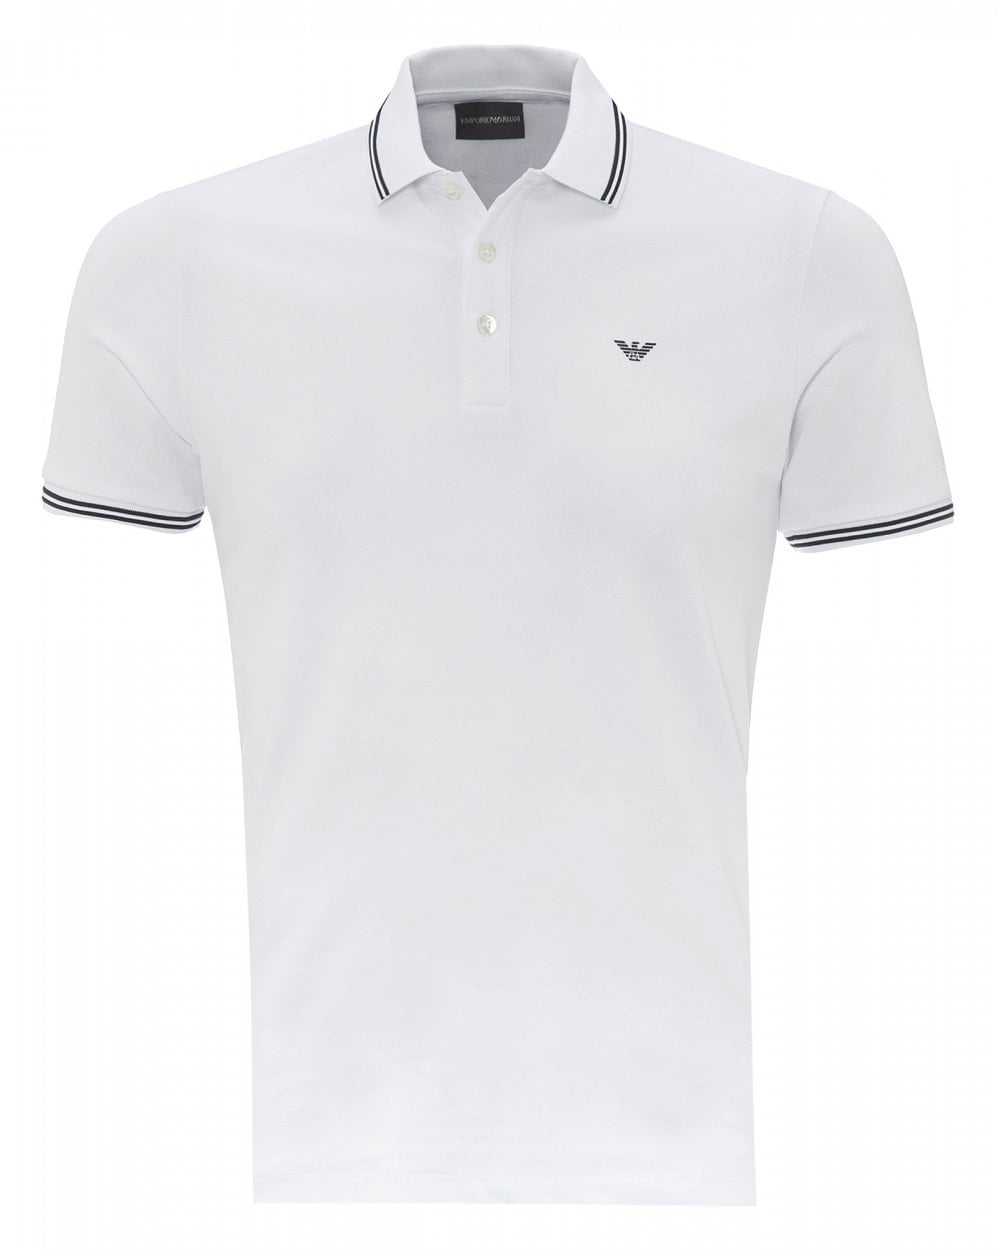 zapatos de separación a04da 42f21 Mens Tipped Collar & Cuff Polo Shirt, Modern Fit White Polo